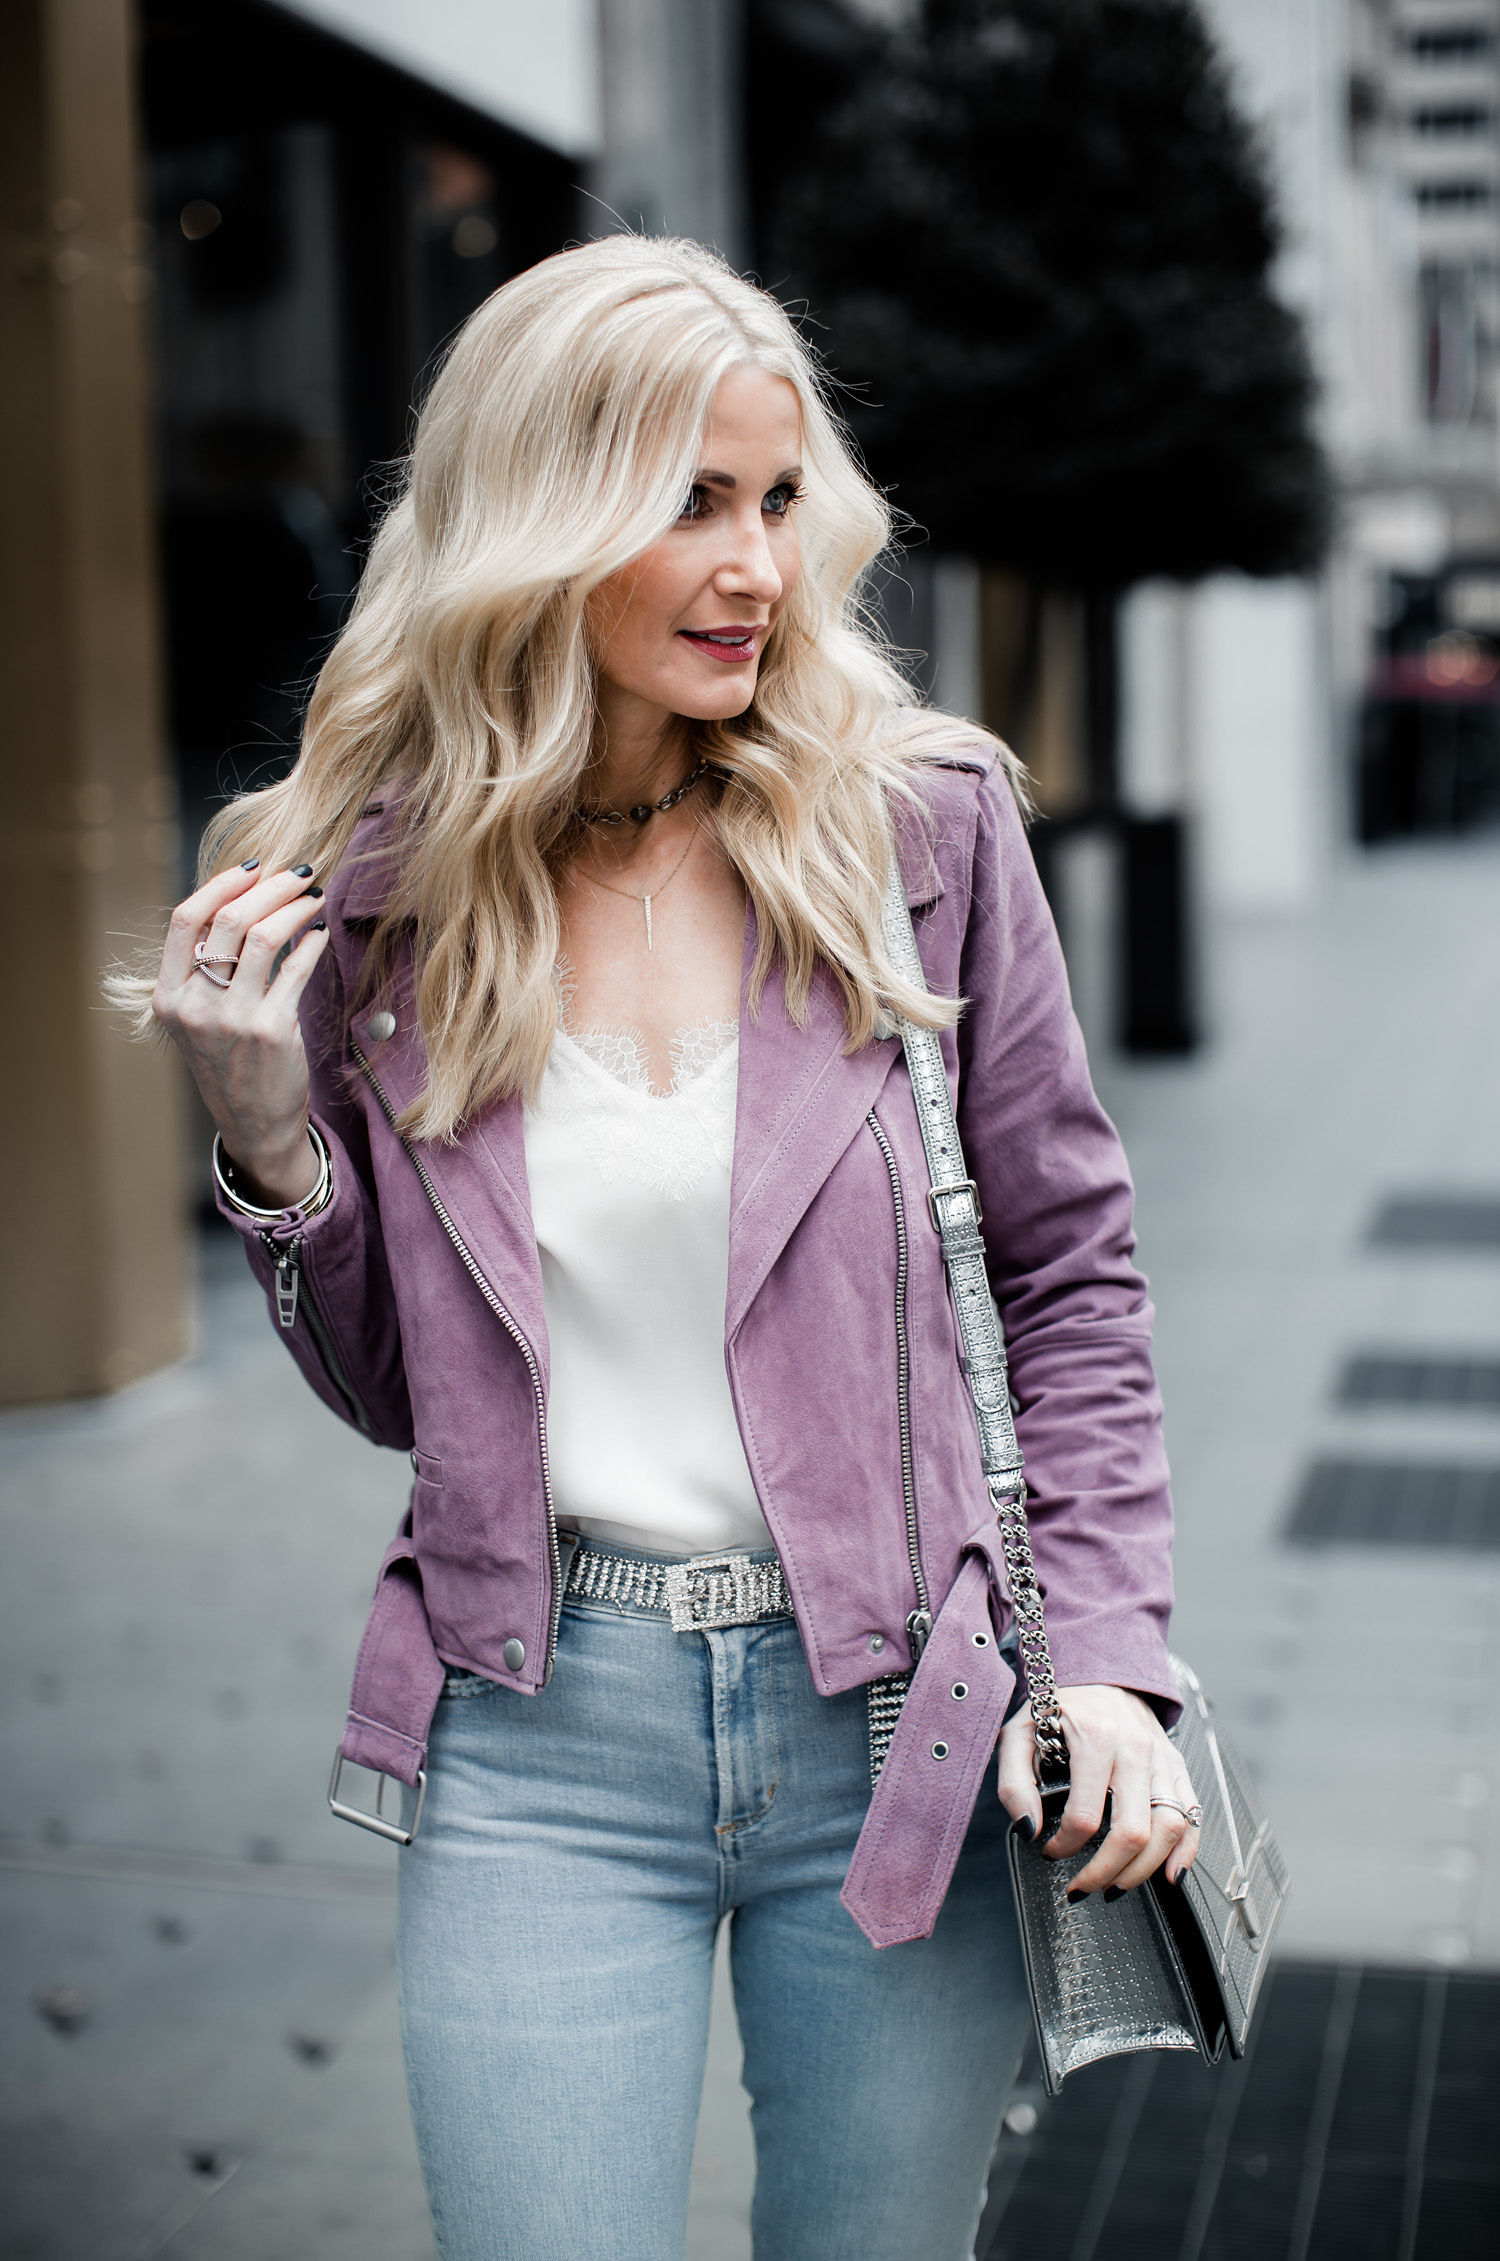 Dallas style blogger wearing Caminyc top and Blanknyc moto jacket